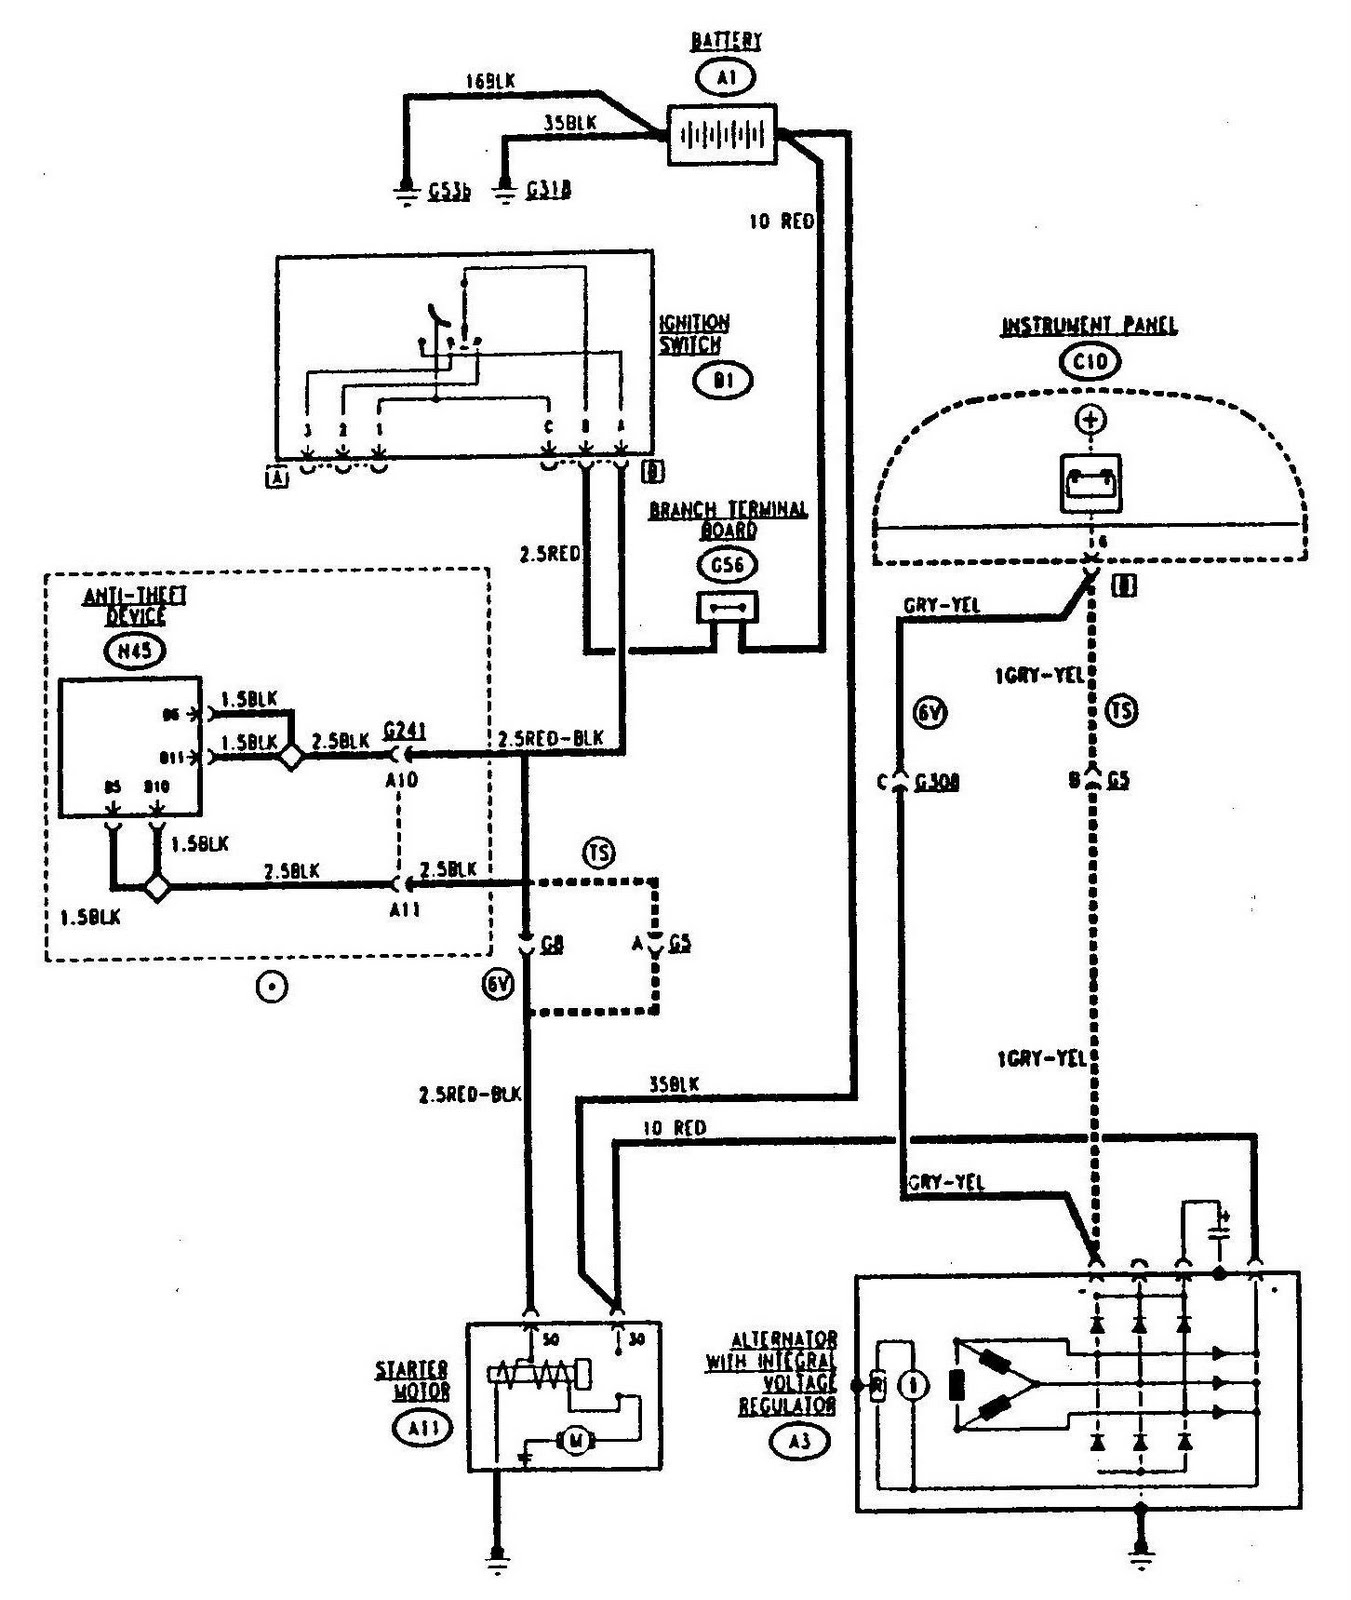 Electric Circuit Drawing At Free For Personal Use Volvo 240 Cruise Control Wiring Diagram 1351x1600 Alfa Romeo 155 Starting And Charging Wiringdiagrams